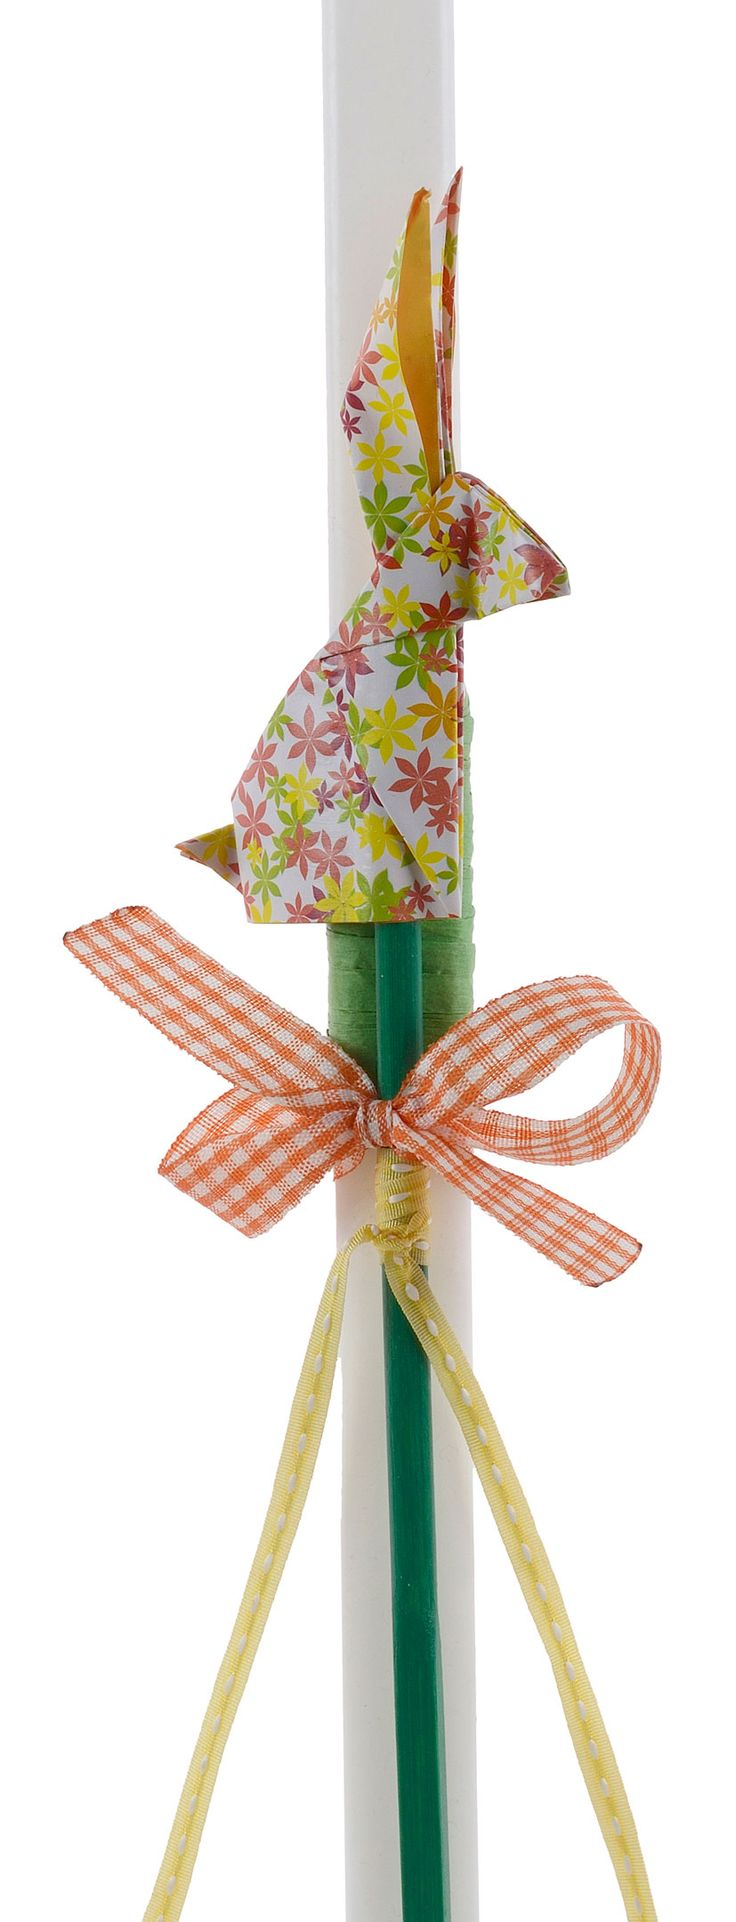 Origami - Easter Candle with origami creations, created by Katerina Christoforidi.